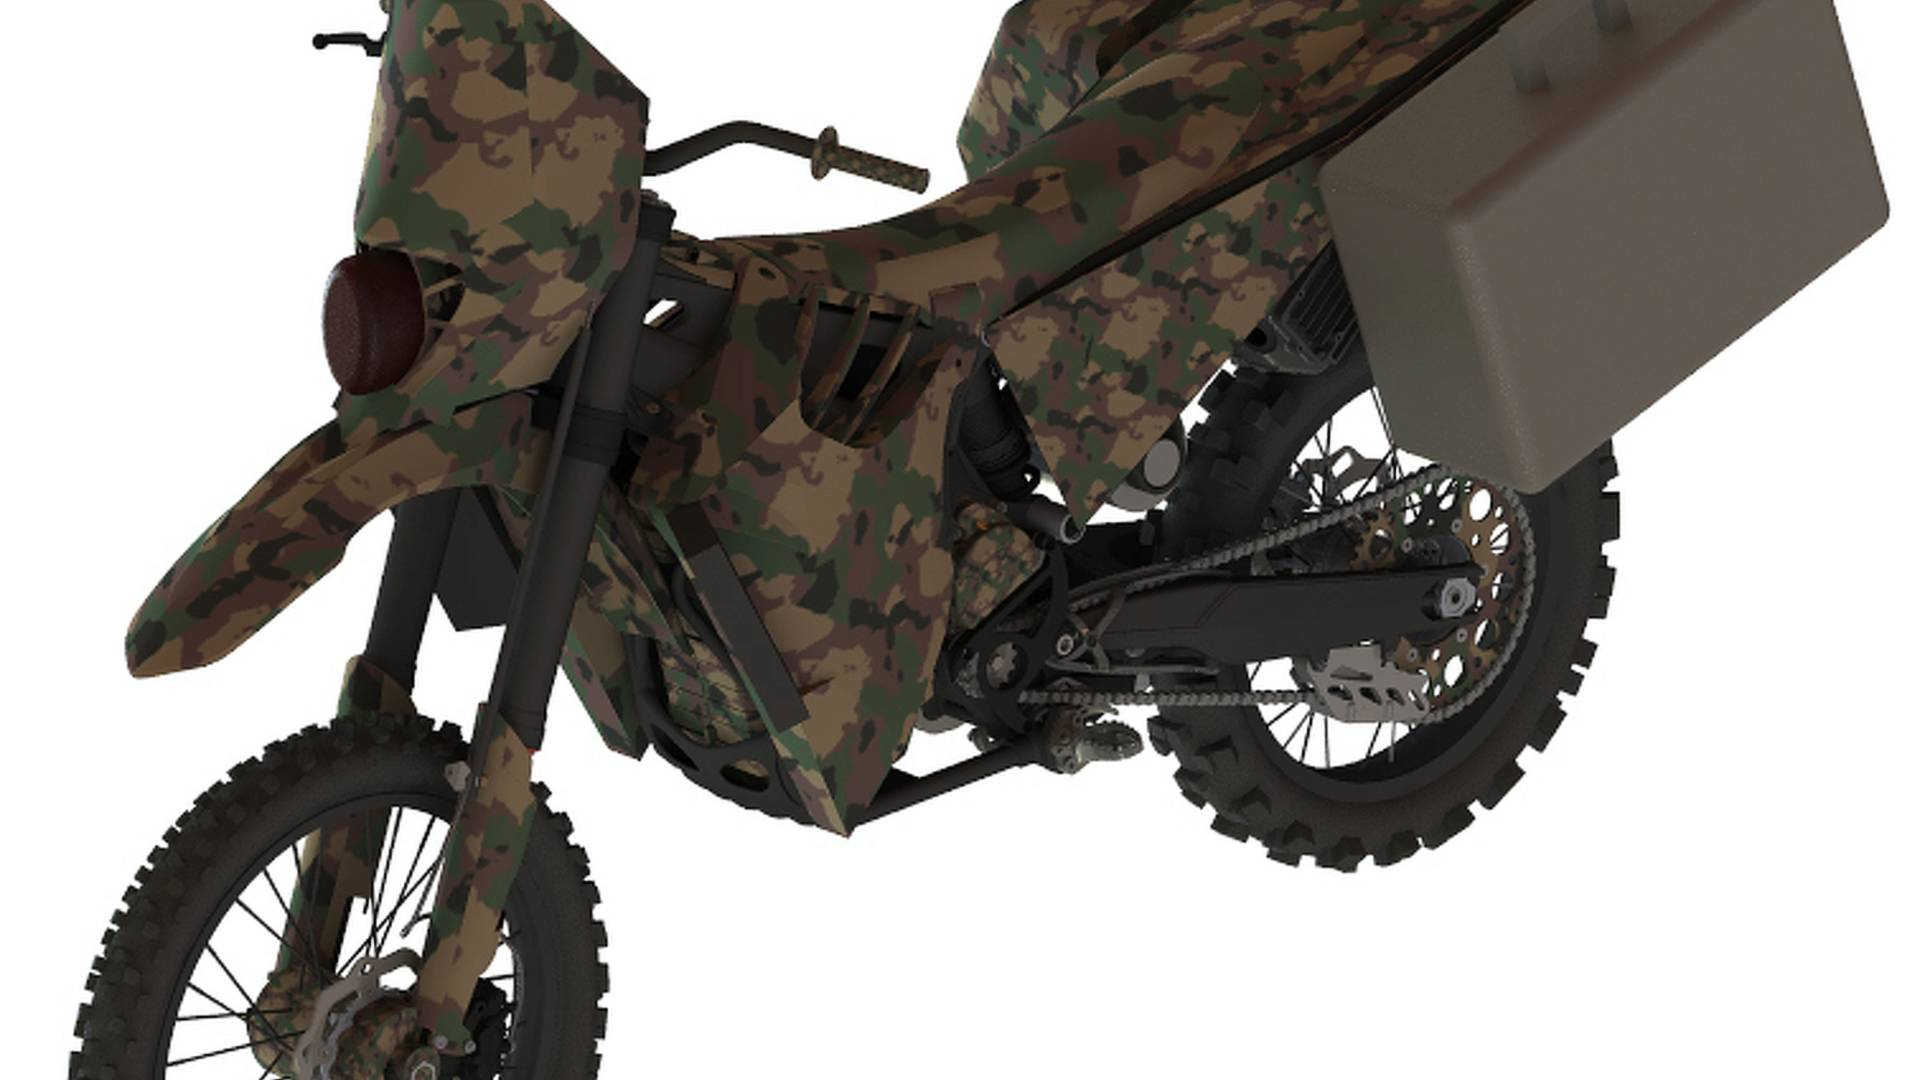 silent-hawk-a-hybrid-silent-motorcycle-for-us-special-forces